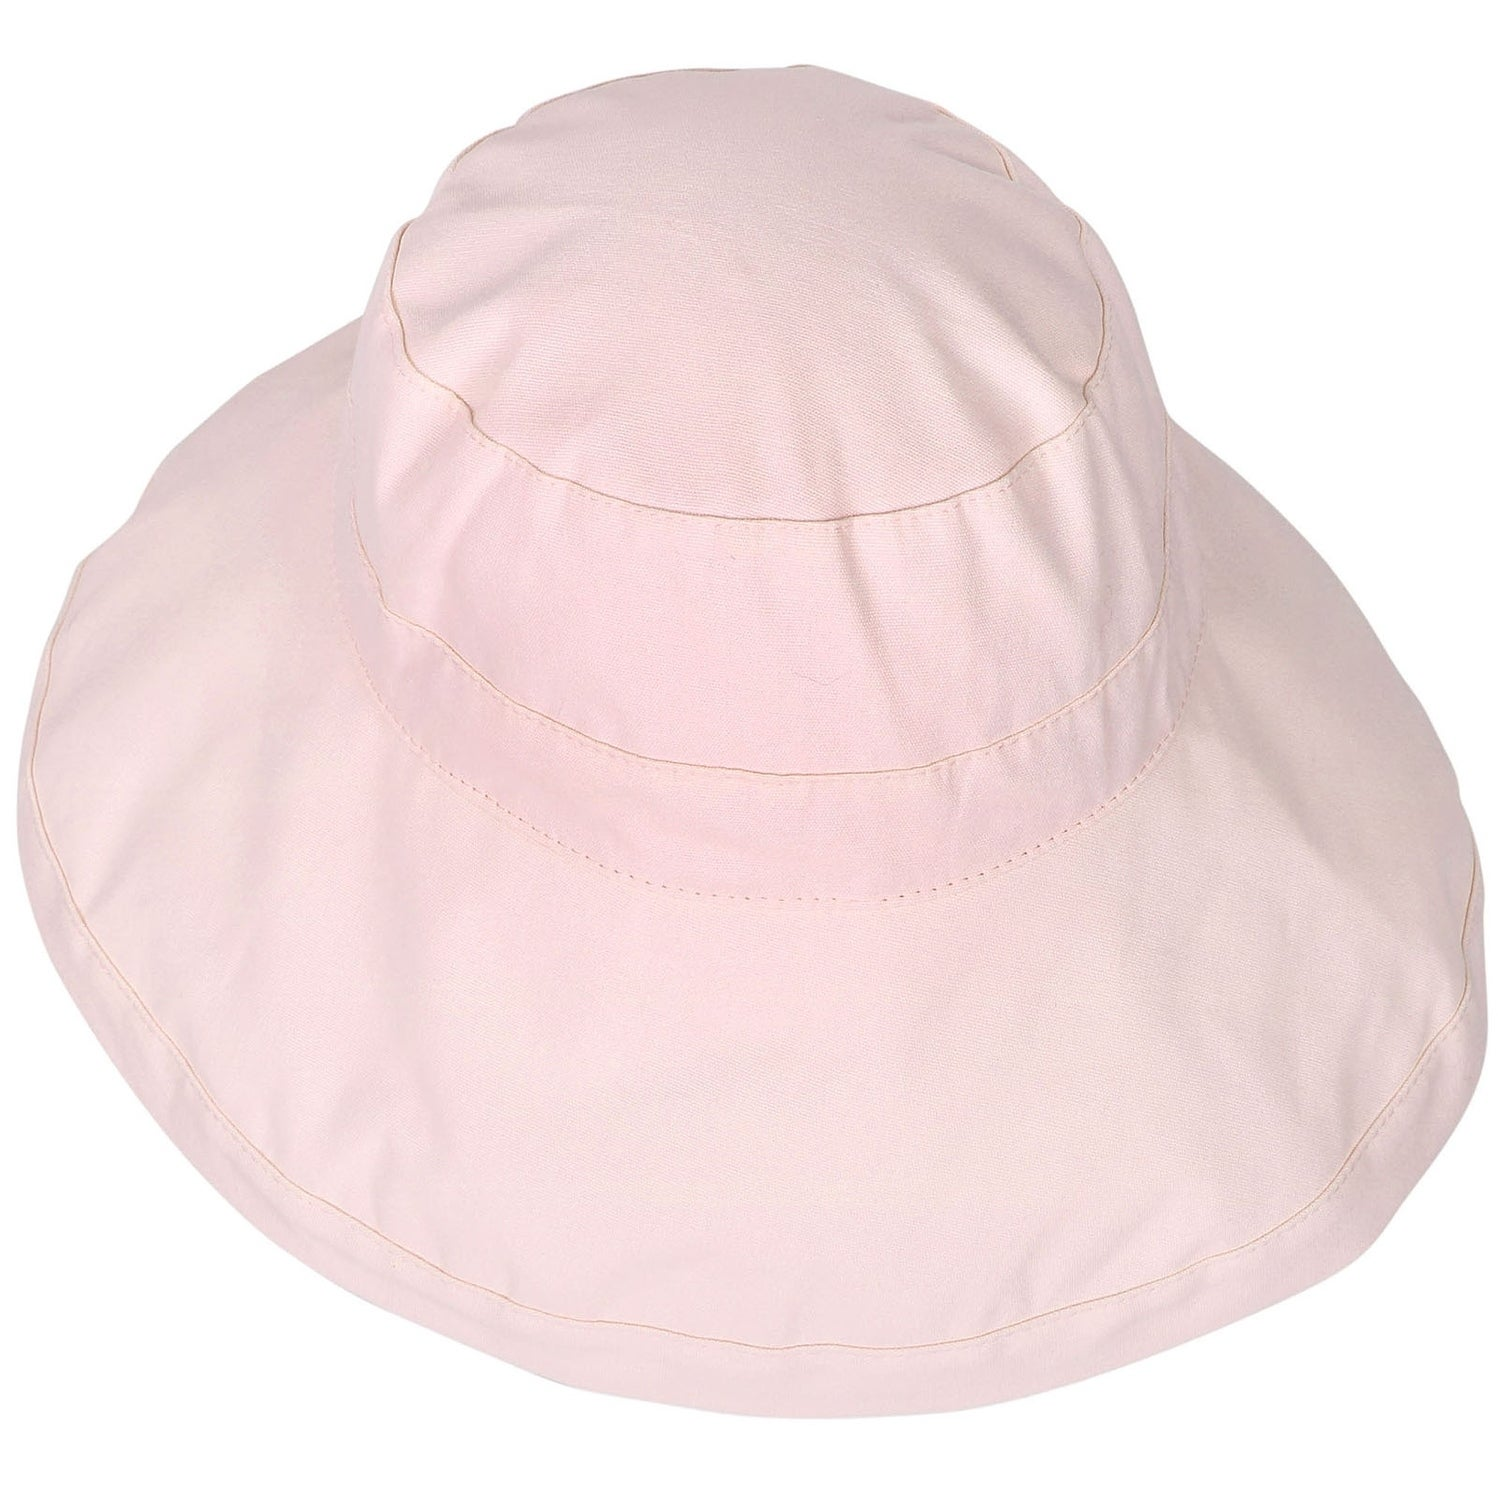 74e48ca6730 Shop Women s Foldable Cotton Wide Brim Bucket Hat with Sun Protection - On  Sale - Free Shipping On Orders Over  45 - Overstock - 17928417